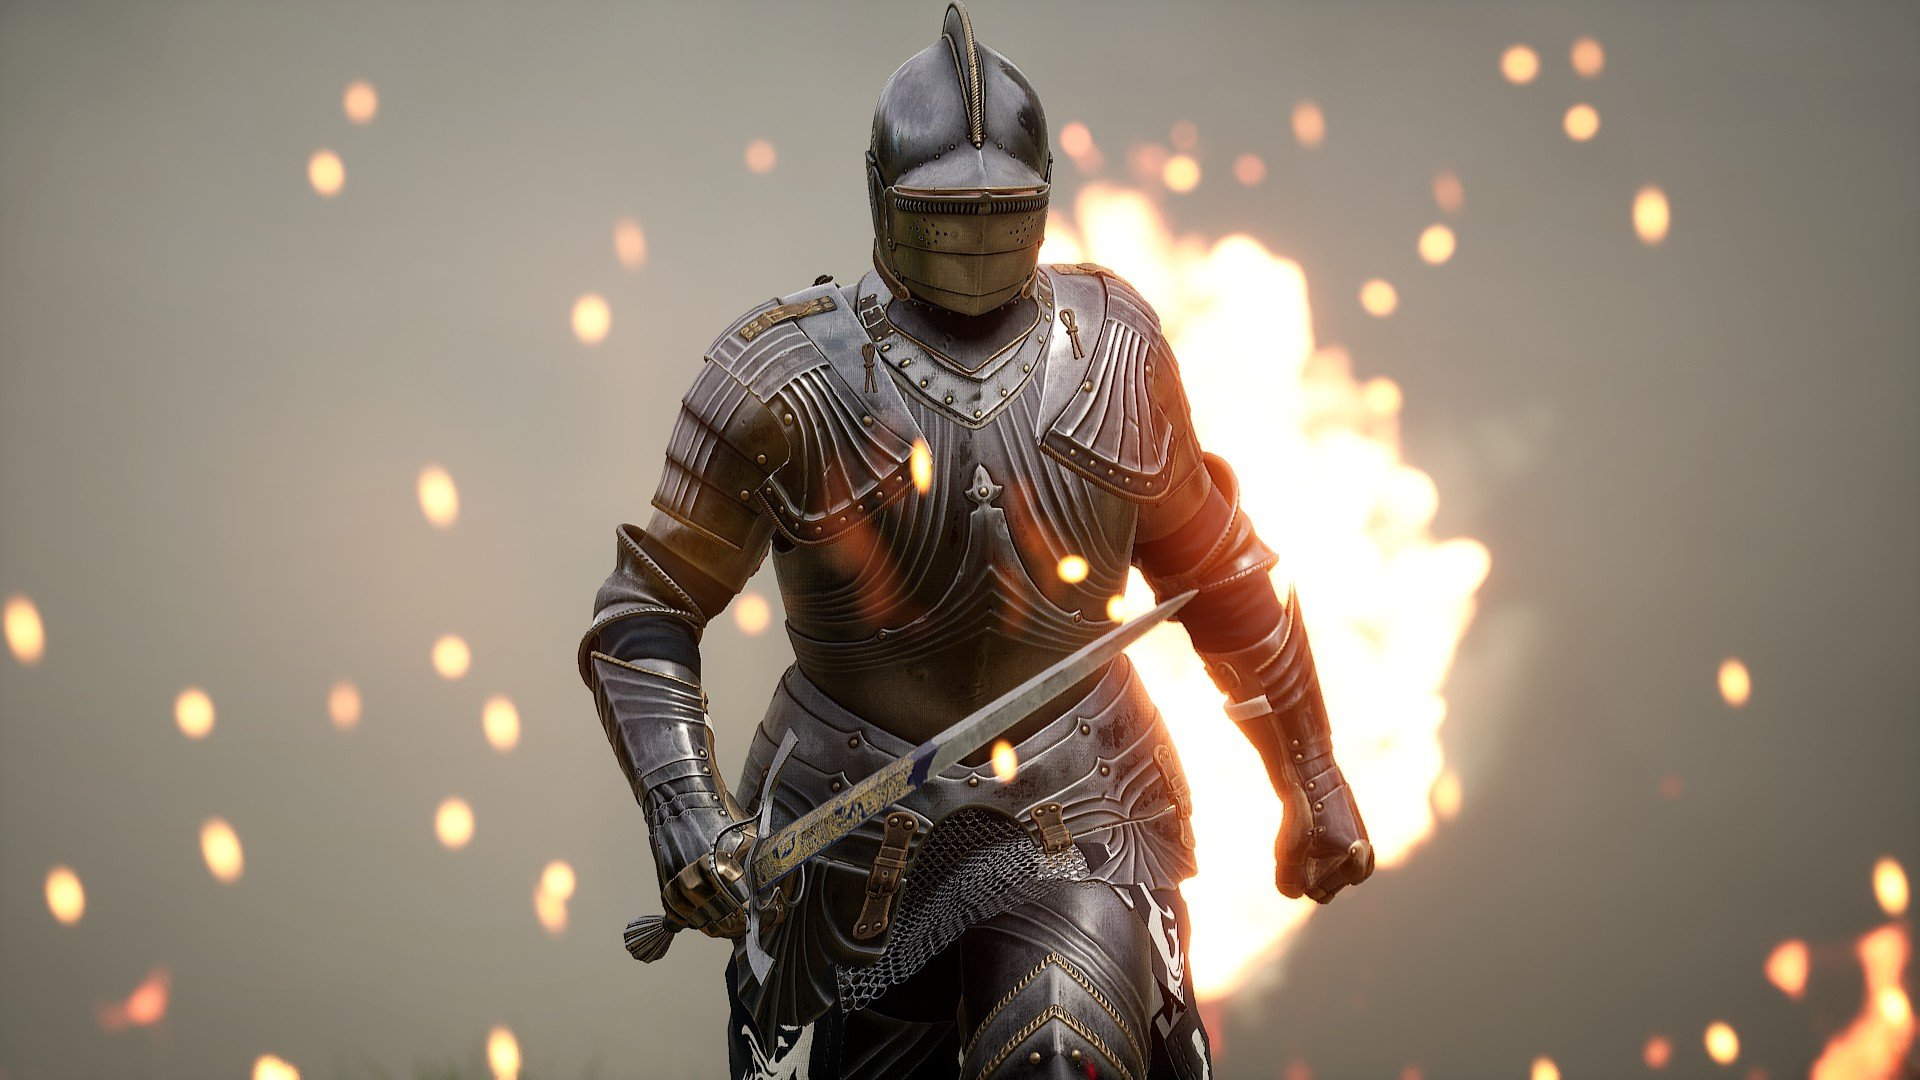 You can fine-tune your mercenary to your liking both in terms of exterior appearance and their weapons loadout in Mordhau.